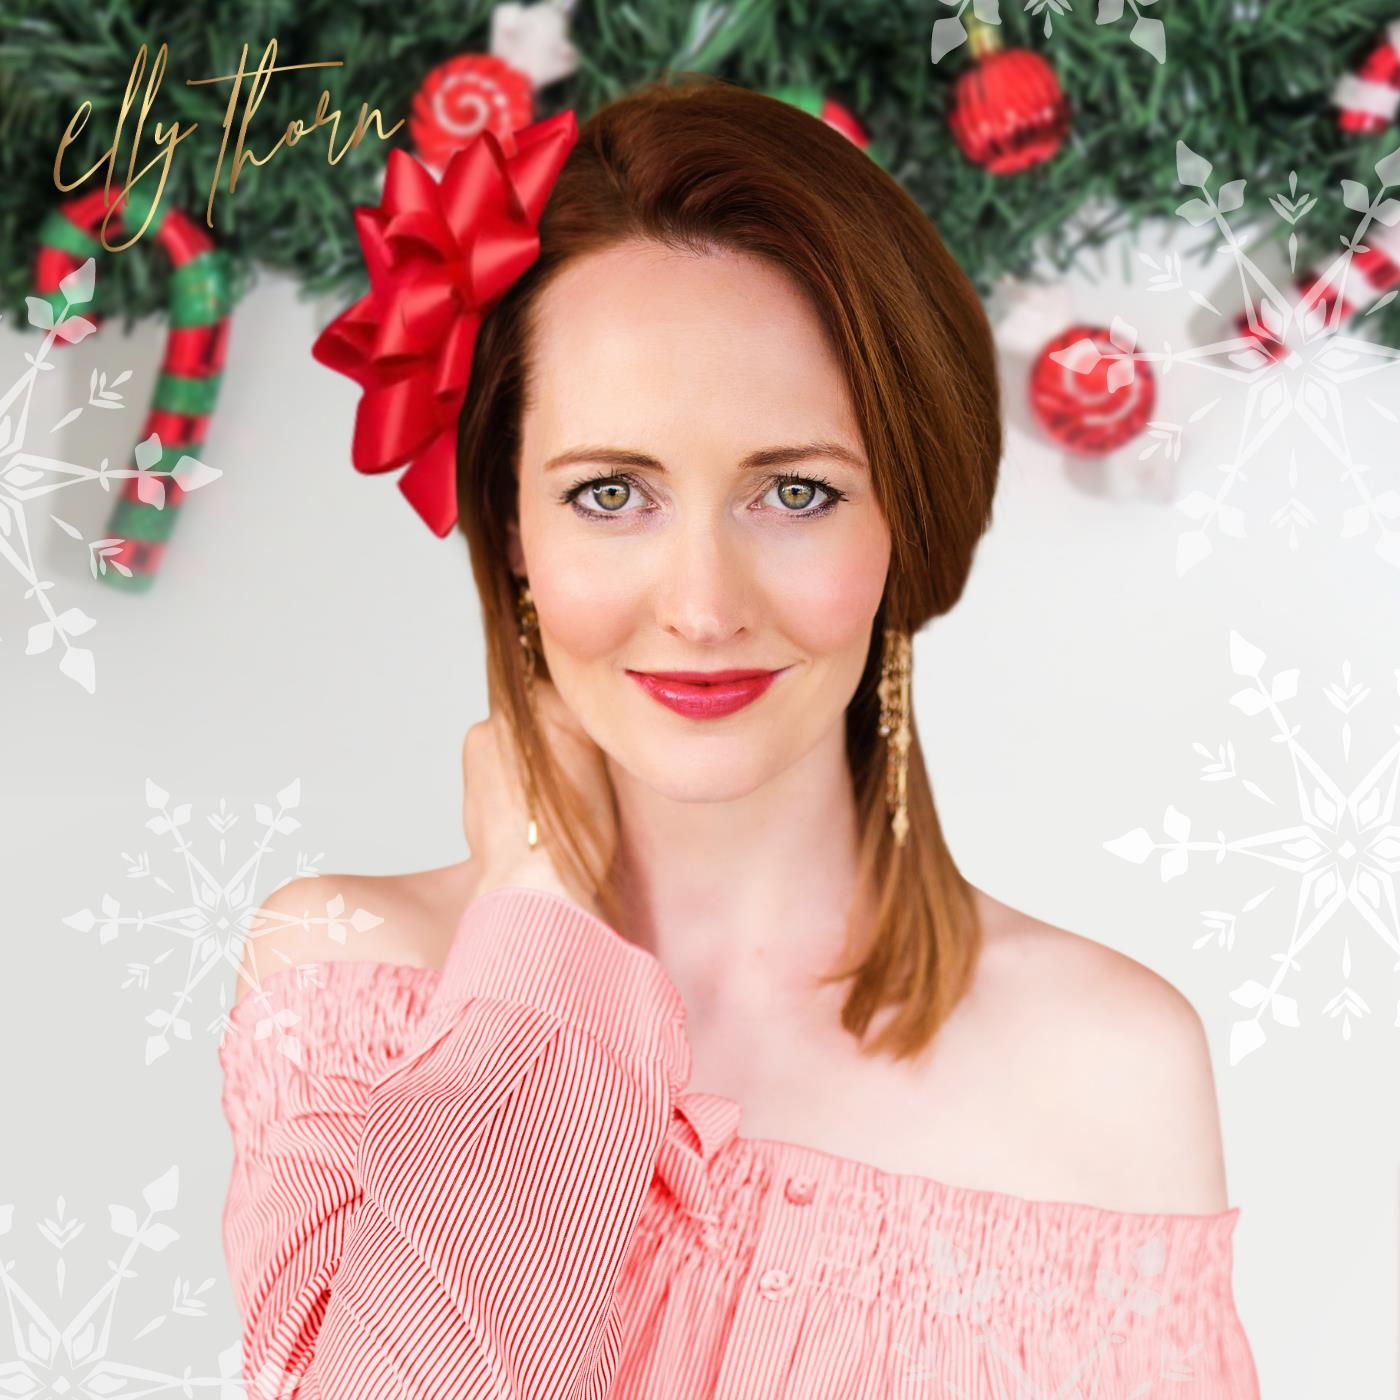 Connecting at Christmas with Elly Thorn and Friends